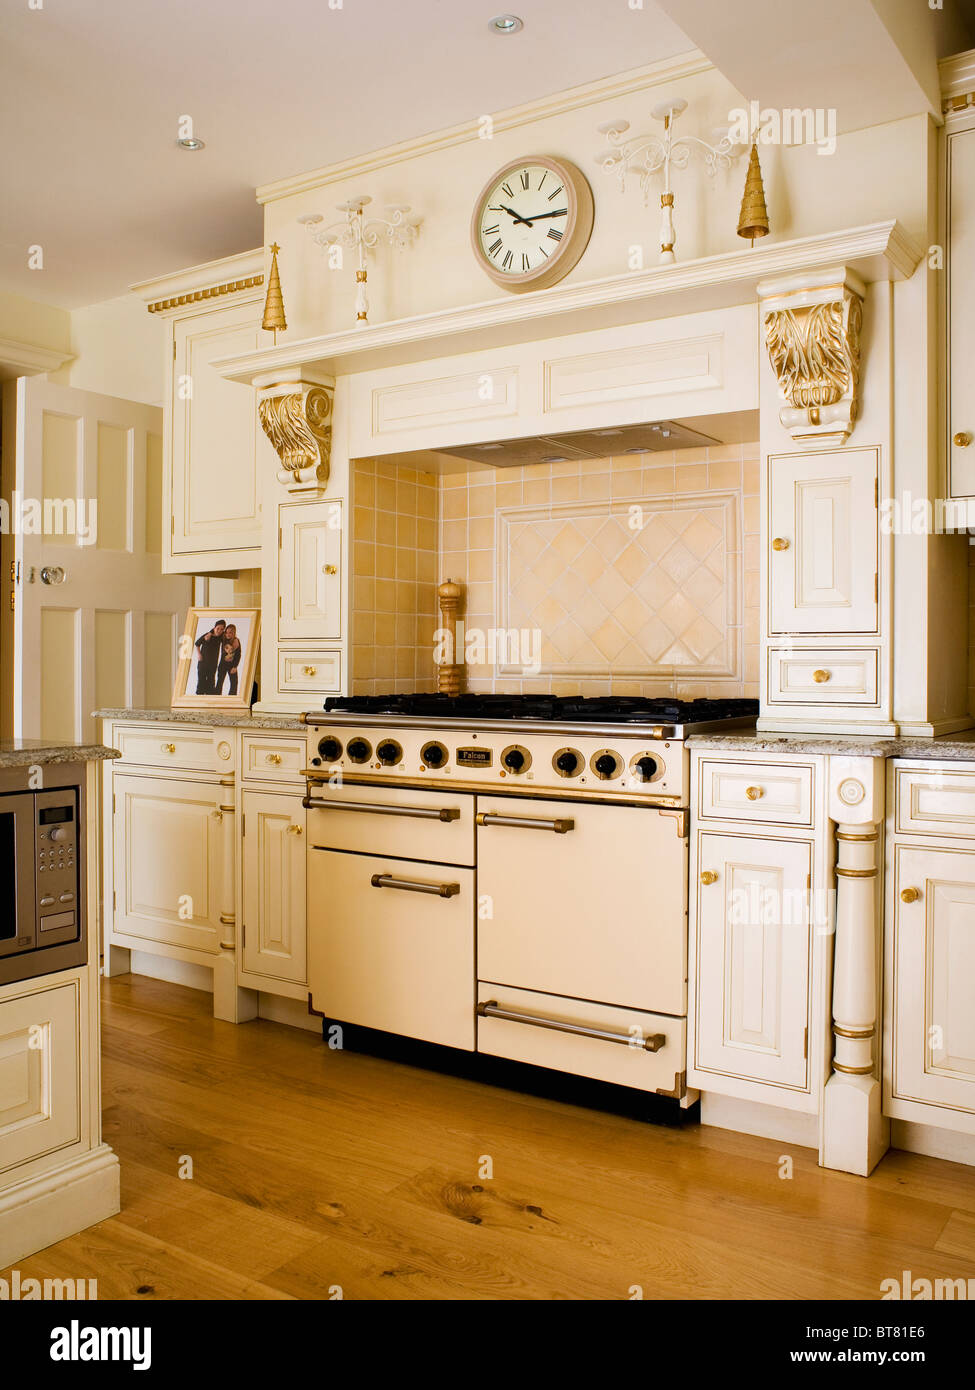 Cream range oven in traditional cream kitchen with gilt details on ...